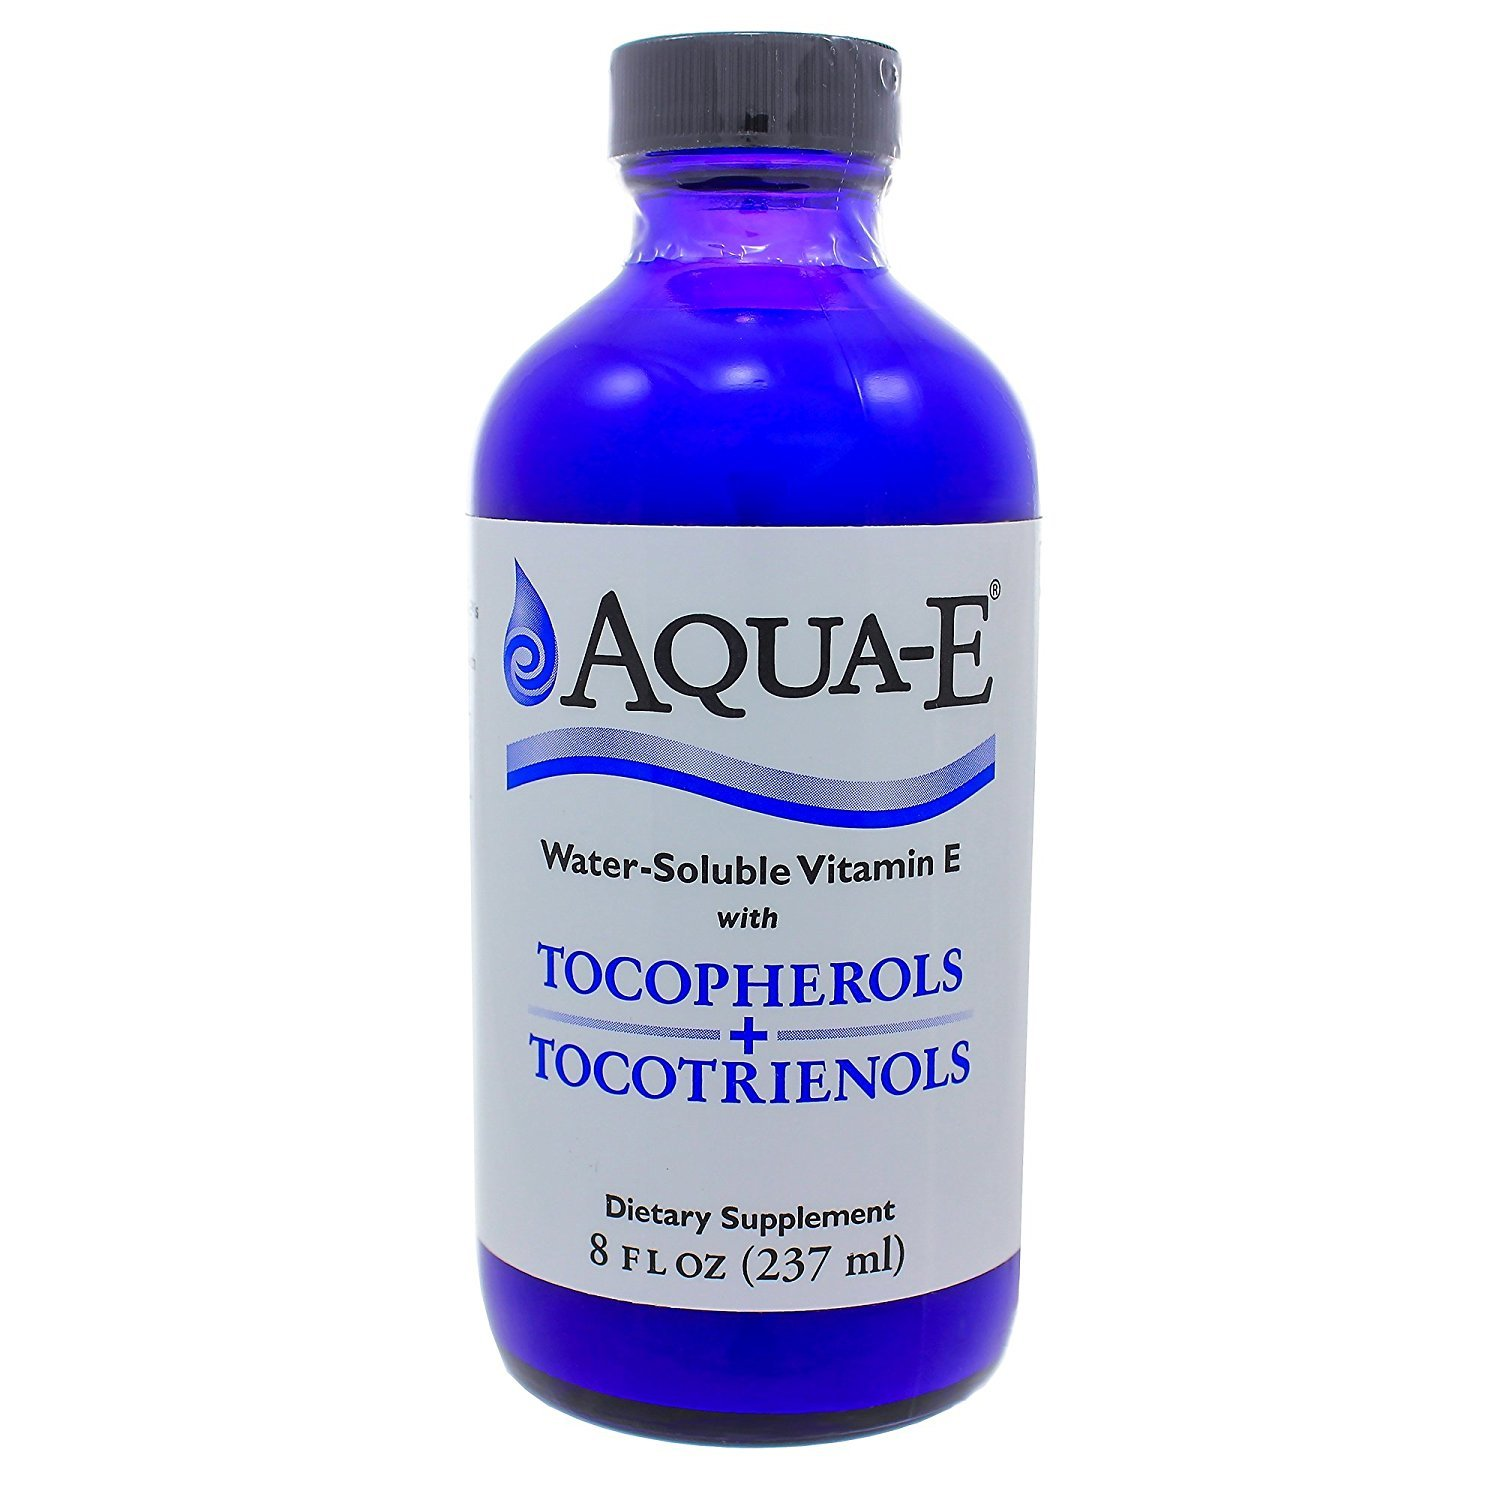 Aqua-E Water-Soluble Vitamin E; Tocopherols & Tocotrienols; 8 fl oz